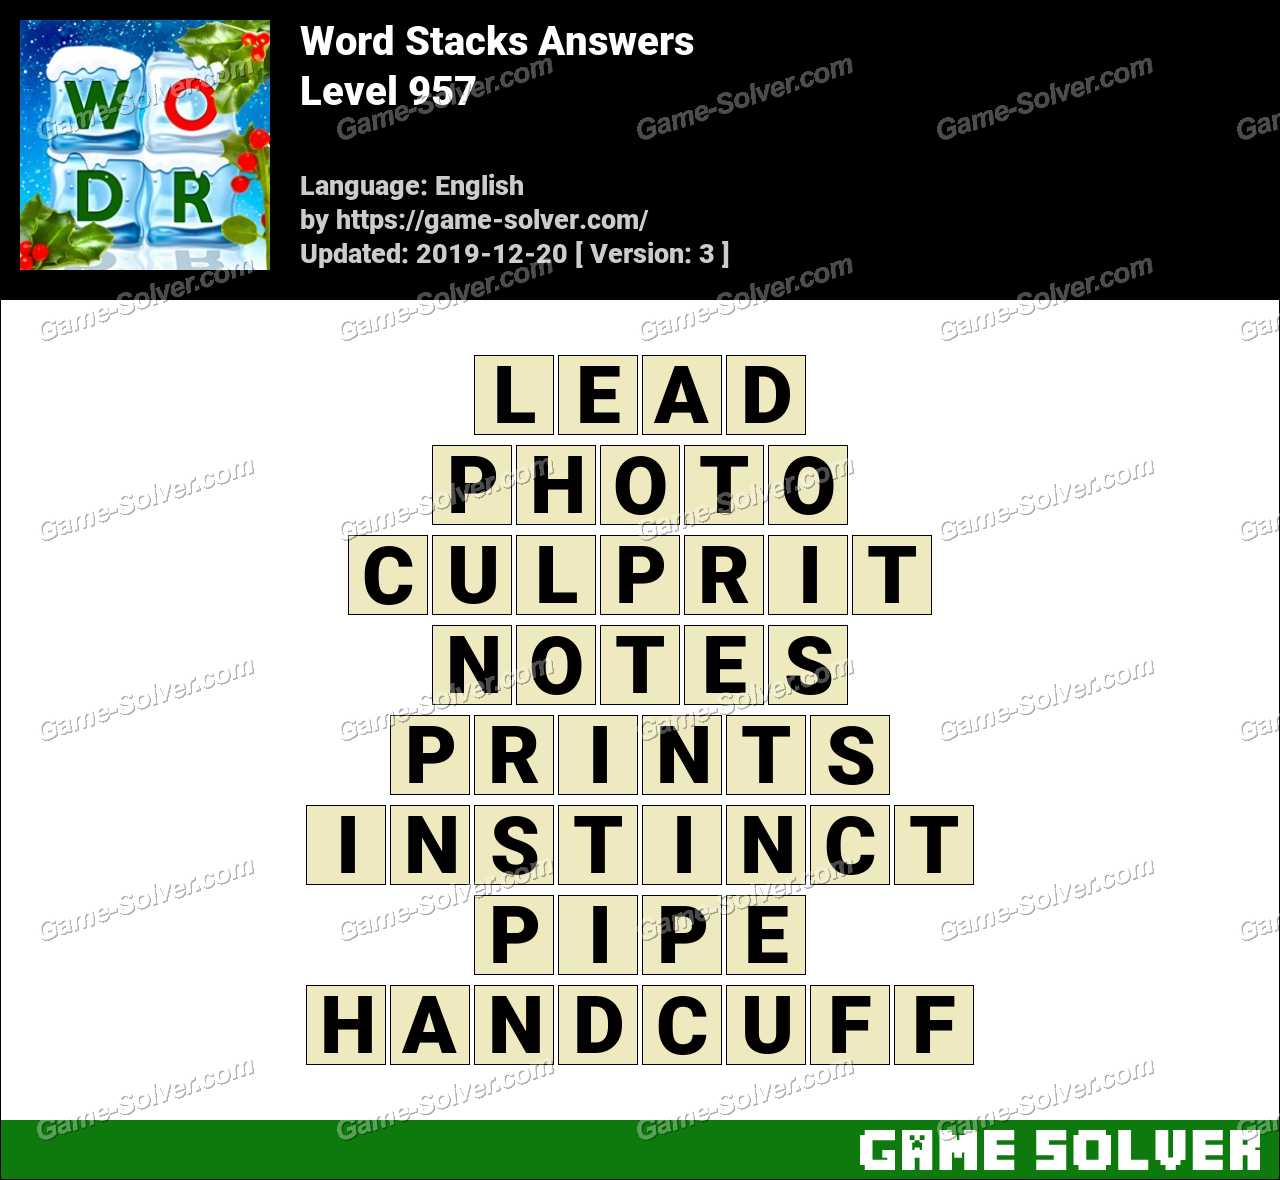 Word Stacks Level 957 Answers